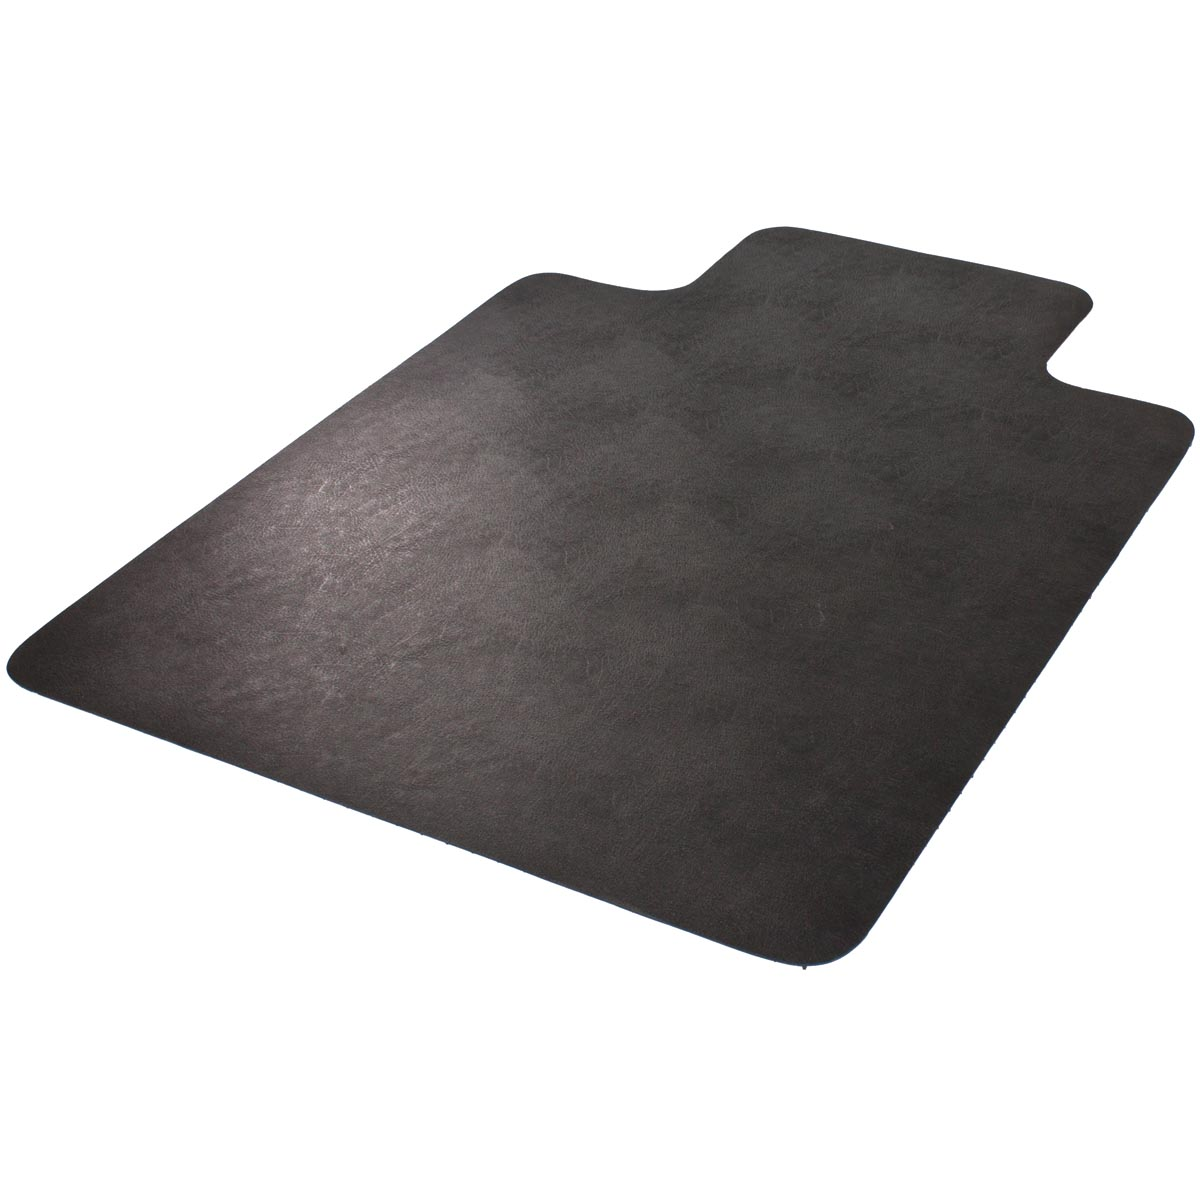 Chair Mat For Thick Carpet Economat Black Chair Mats For Low Pile Carpet Schoolsin